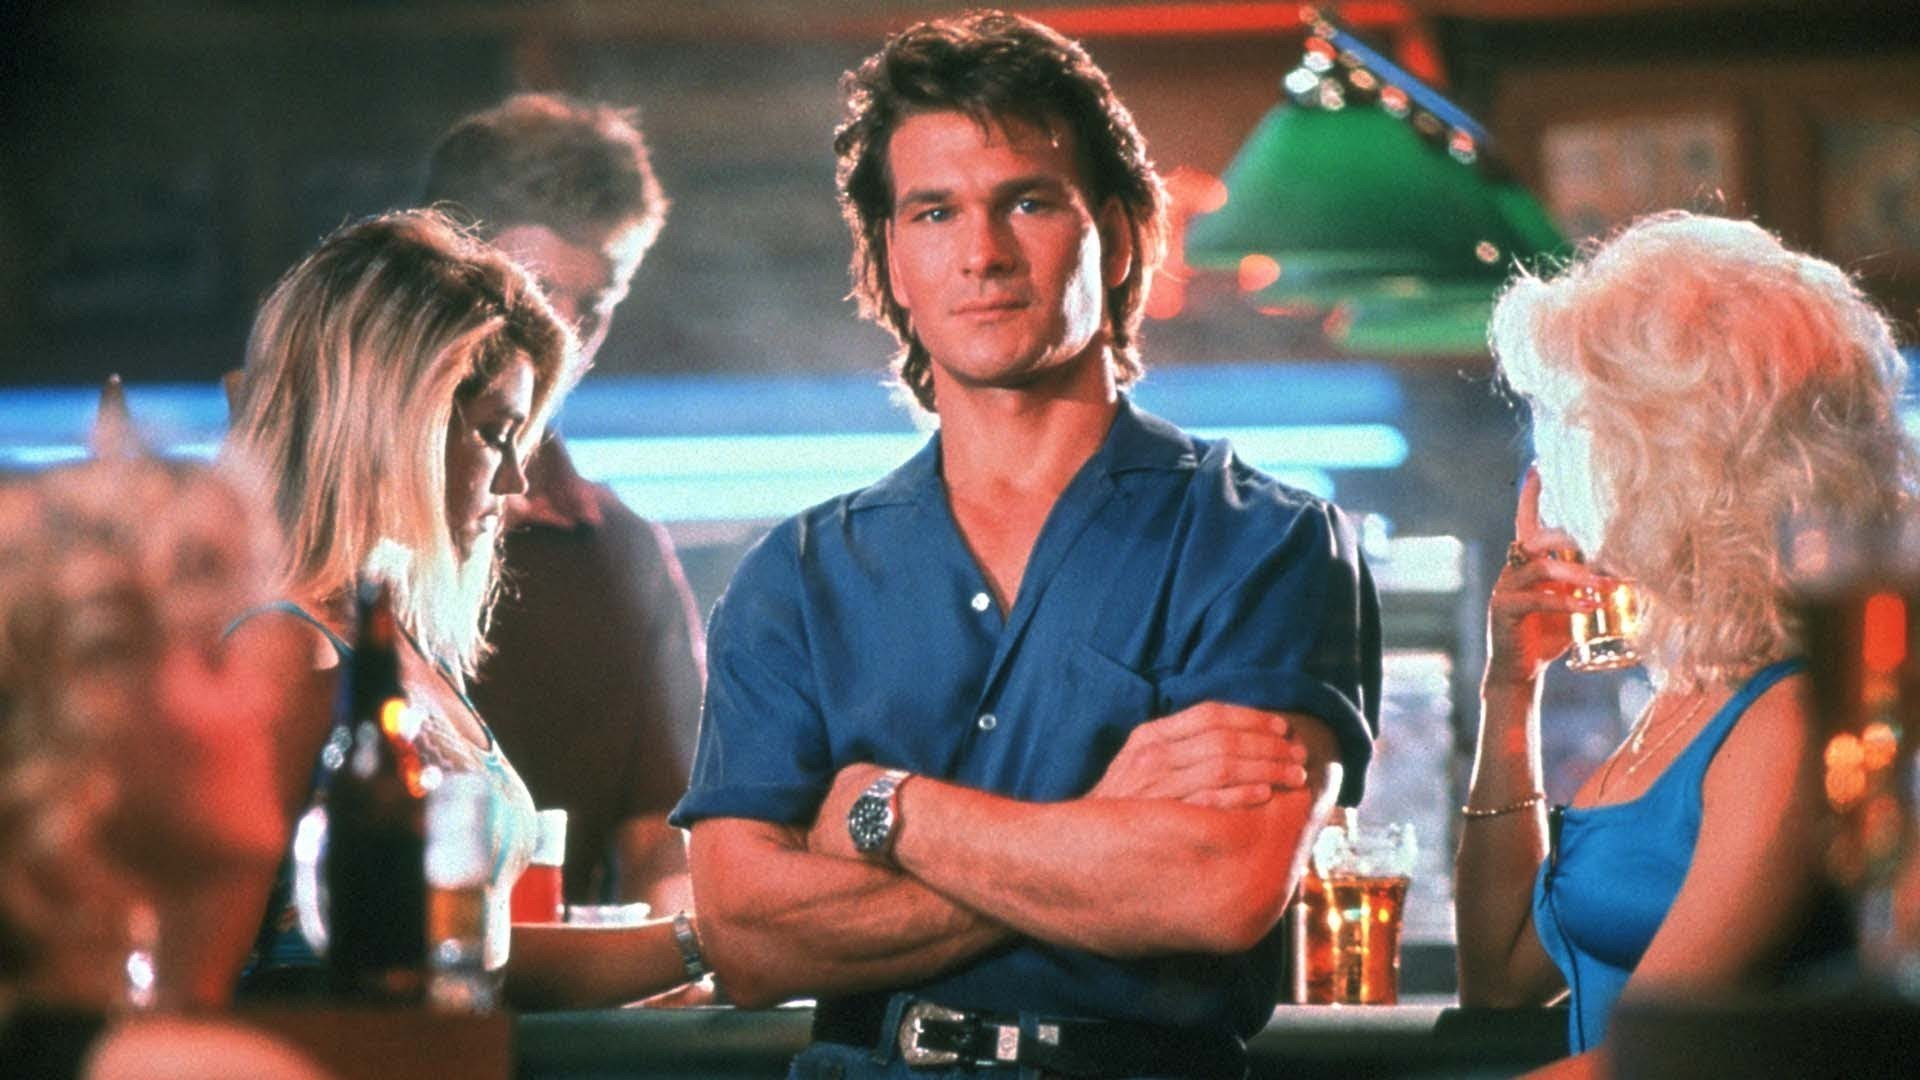 Patrick Swayze in Roadhouse.